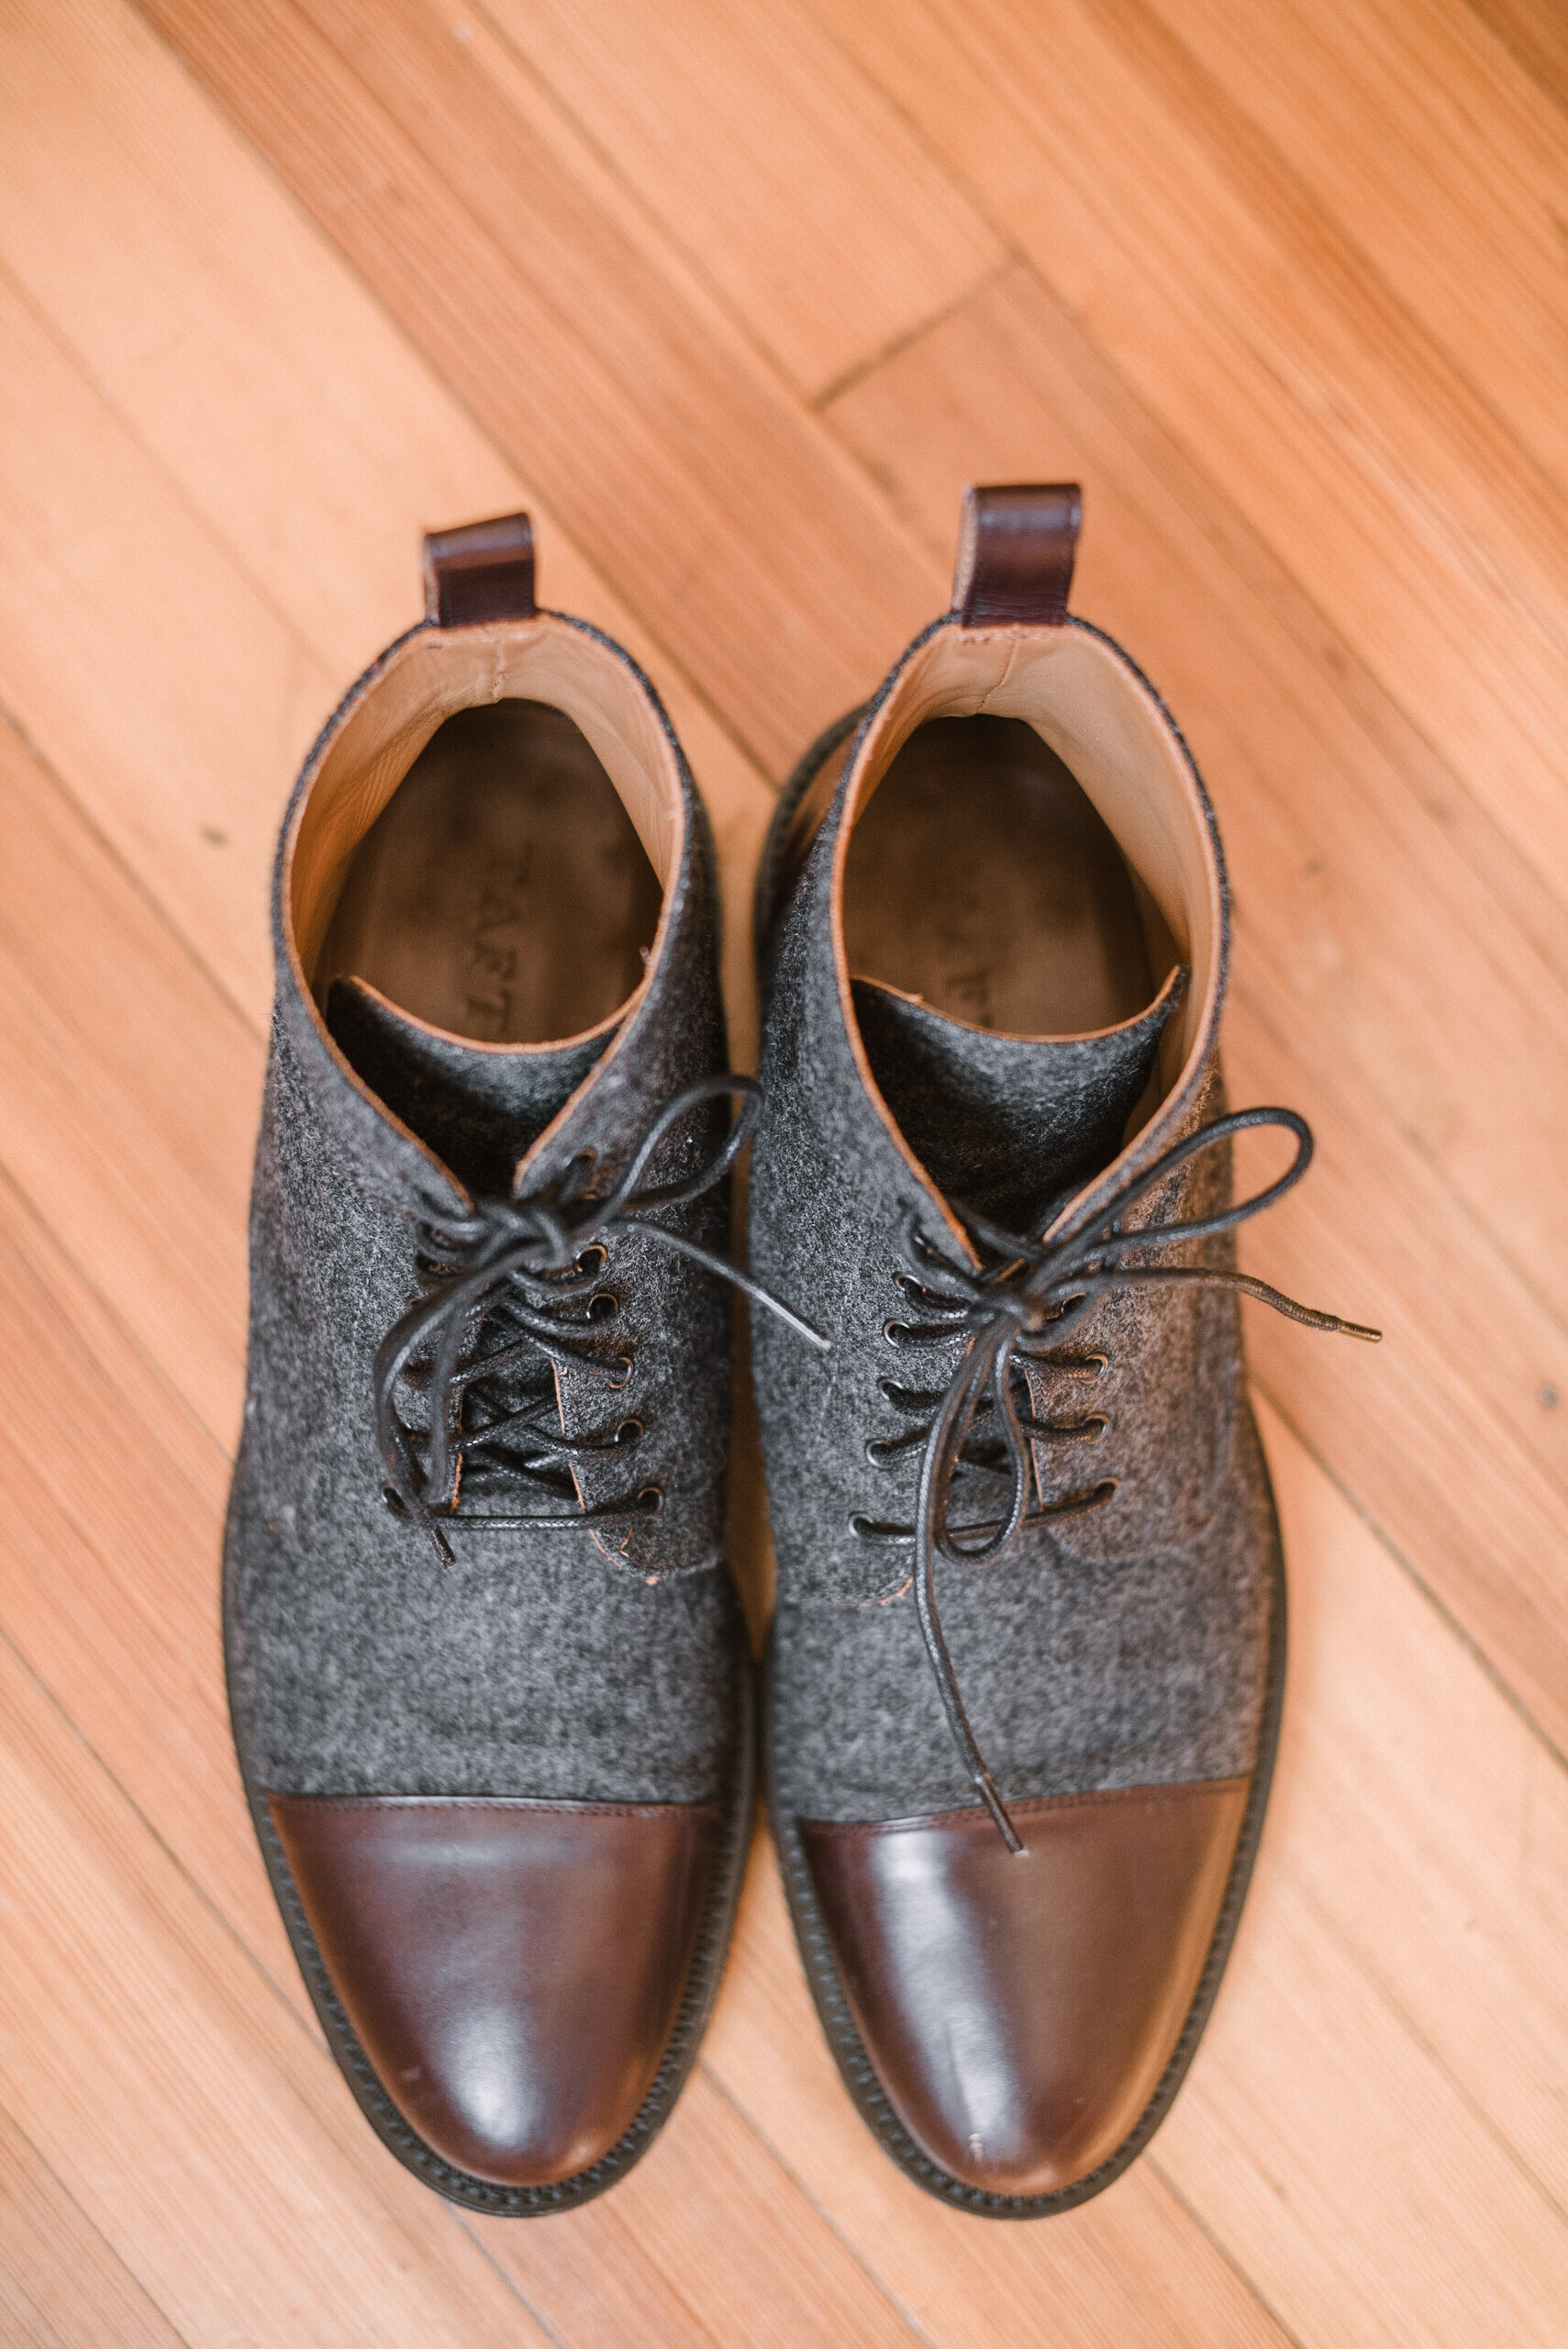 detail shot of groom's shoes at The Inn at Vint Hill